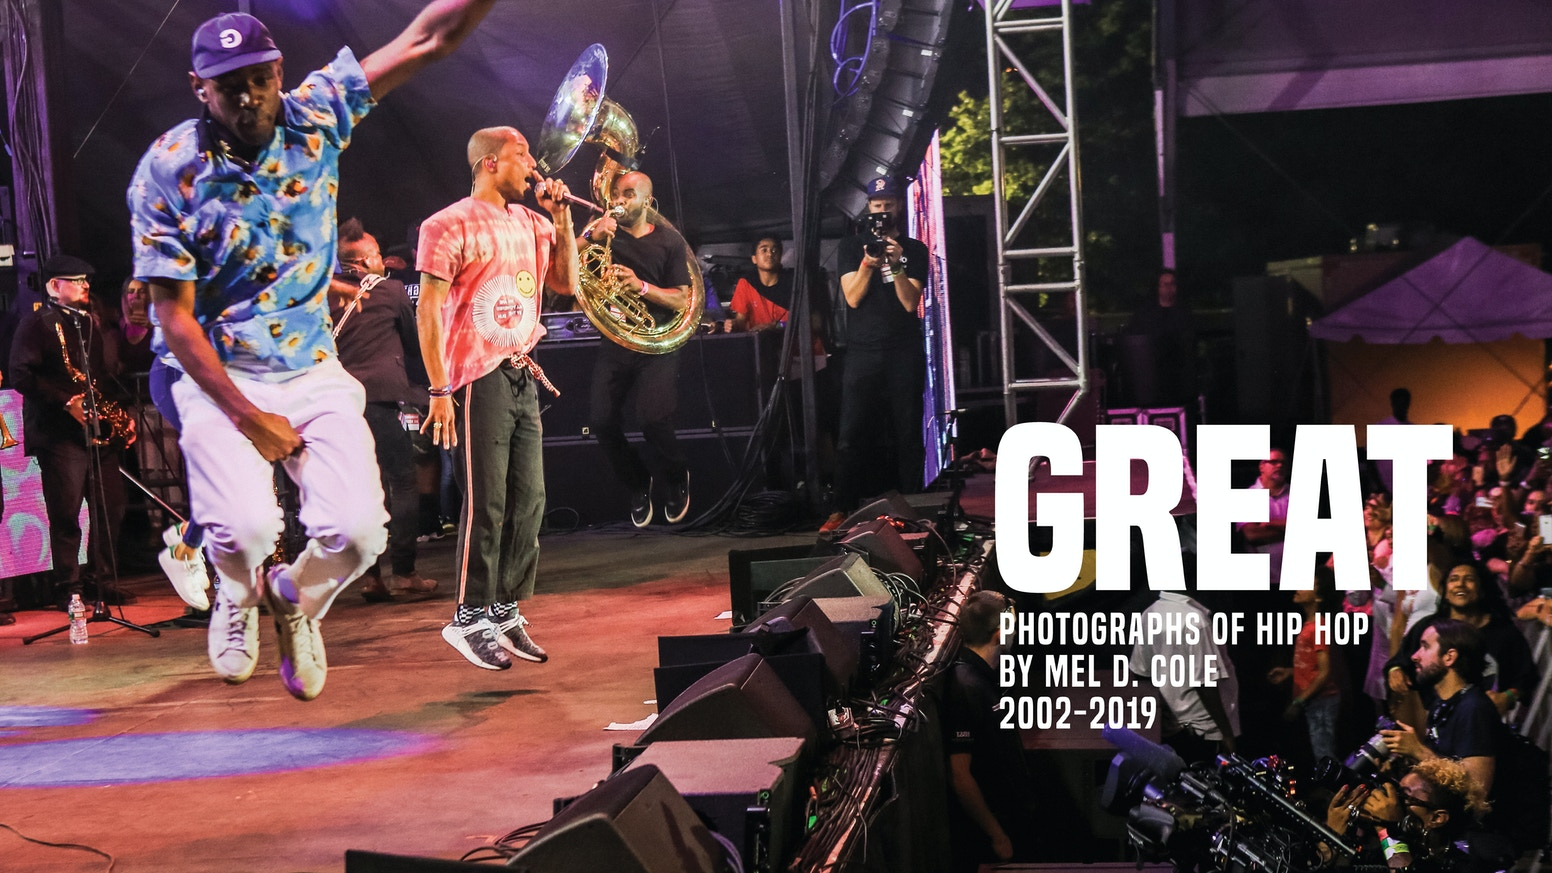 Mel D  Cole Presents GREAT: Photographs of Hip Hop 2002-2019